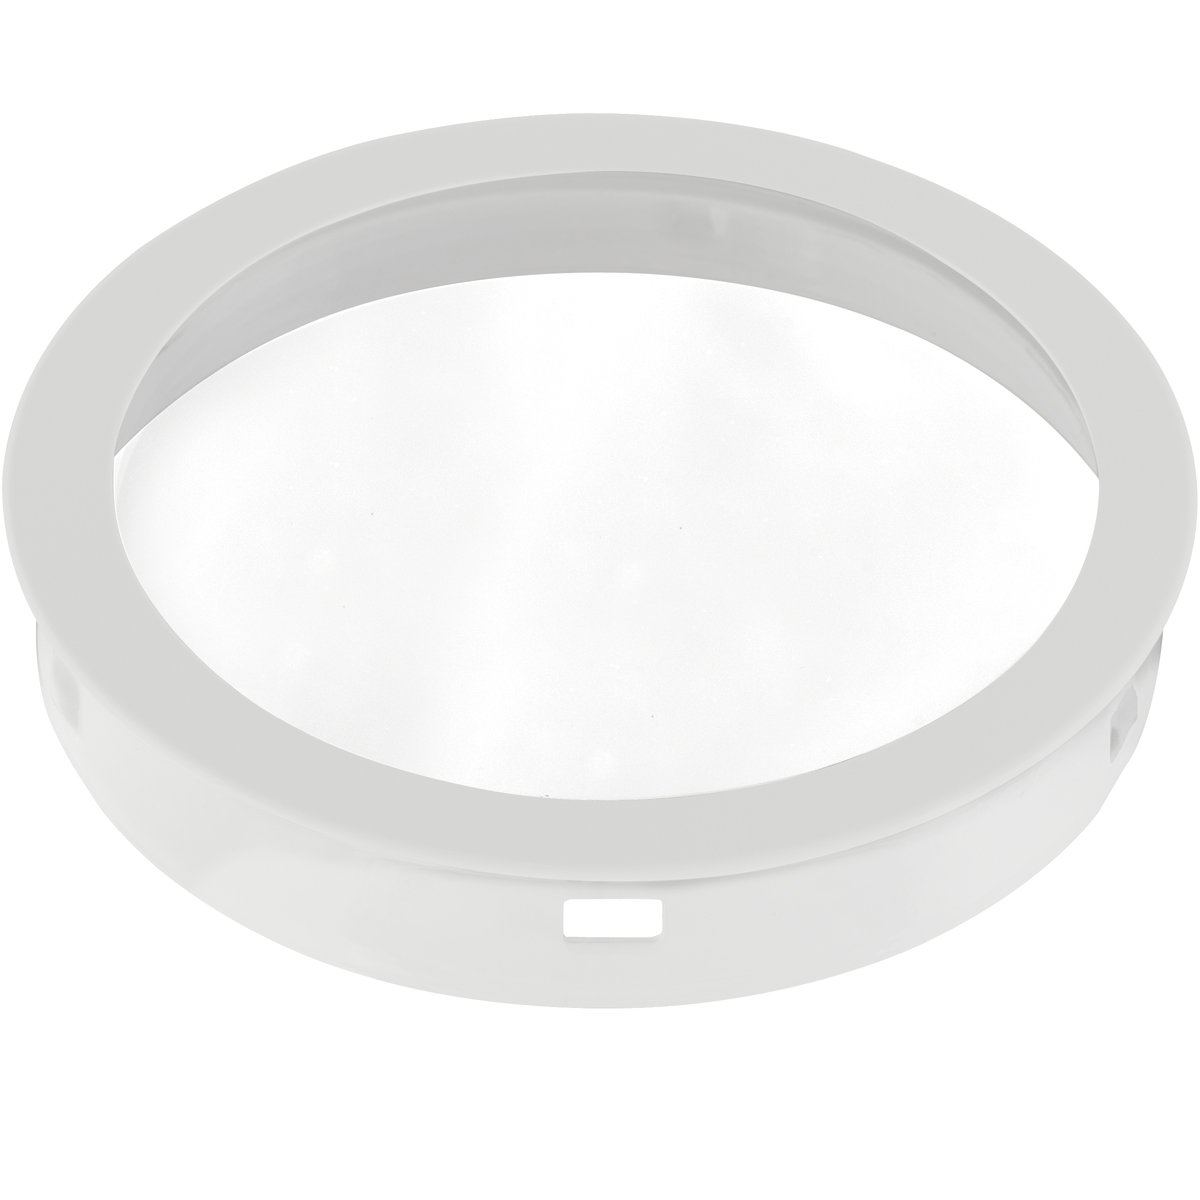 Black Progress Lighting P8799-31 Top Cover Lenses For P5675 Cylinder Adapts Up//Down Fixtures For Wet Location Use Heat and Shatter-Resistant Clear Tempered Lens with Black Trim